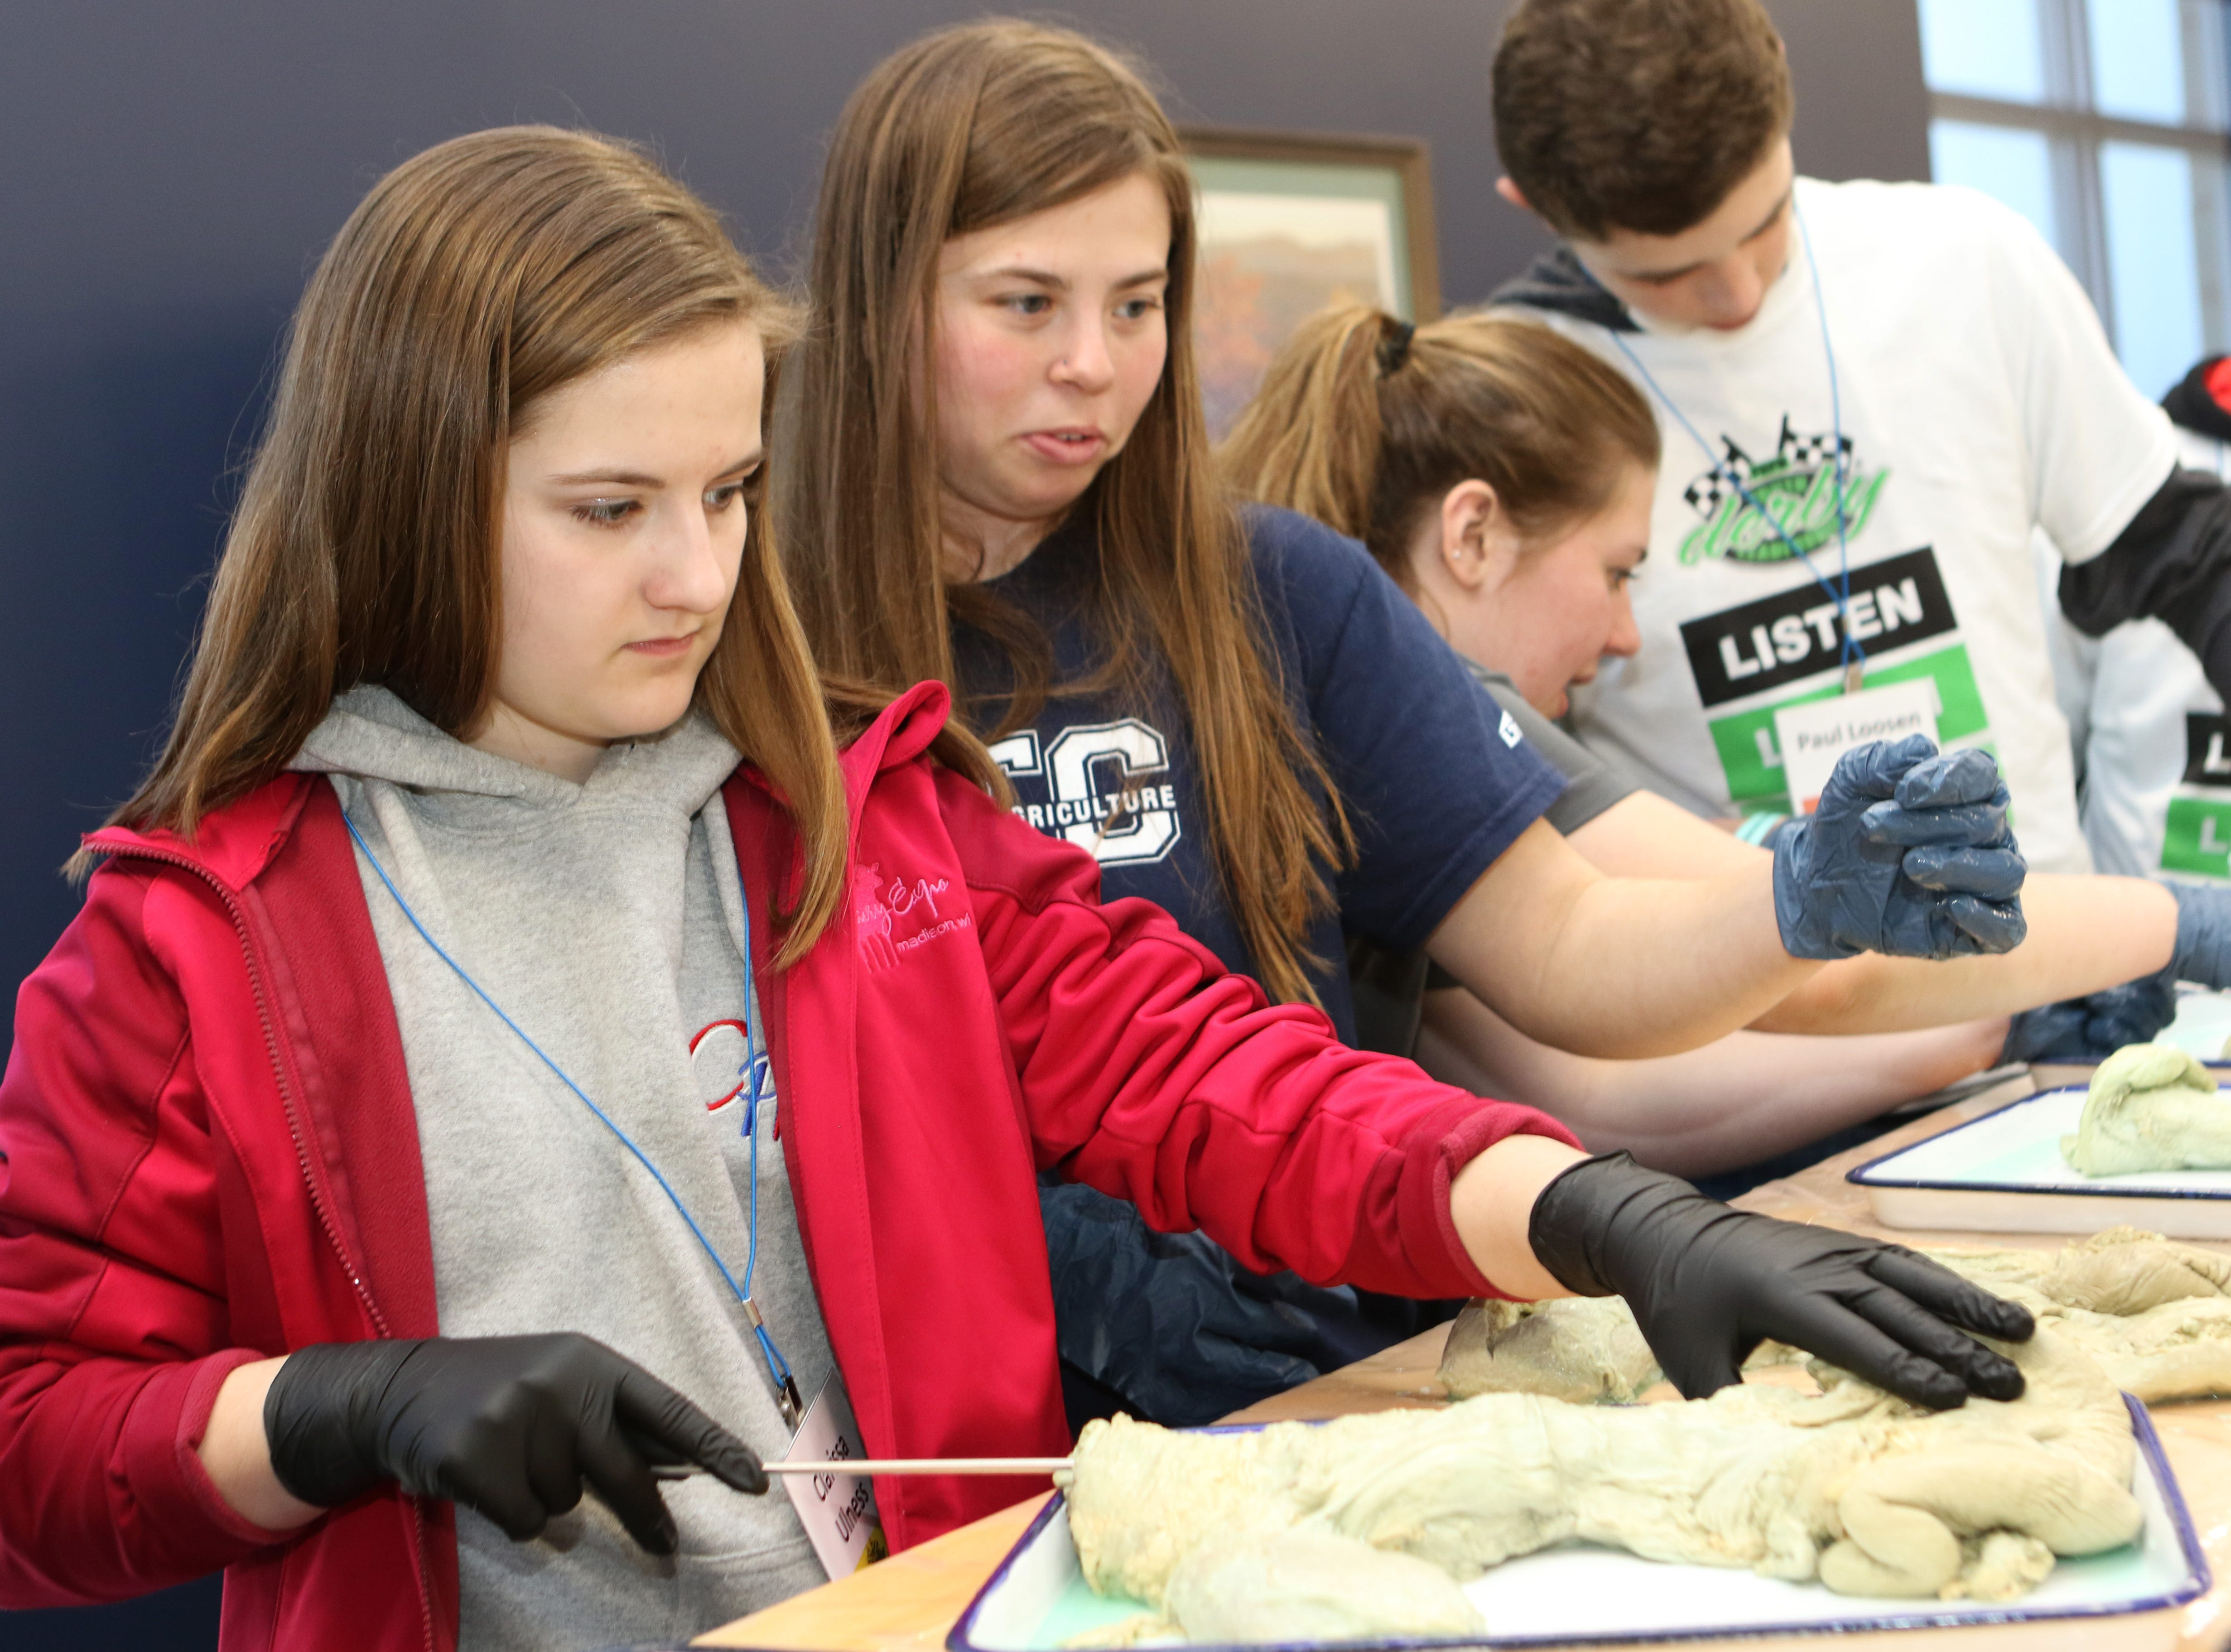 Clarissa Ulness, of Valders, practices the technique of artificial insemination on a cow's reproductive tract during a lab at Lakeshore Technical College as part of the Professional Dairy Producers of Wisconsin Youth Leadership Derby on April 6.